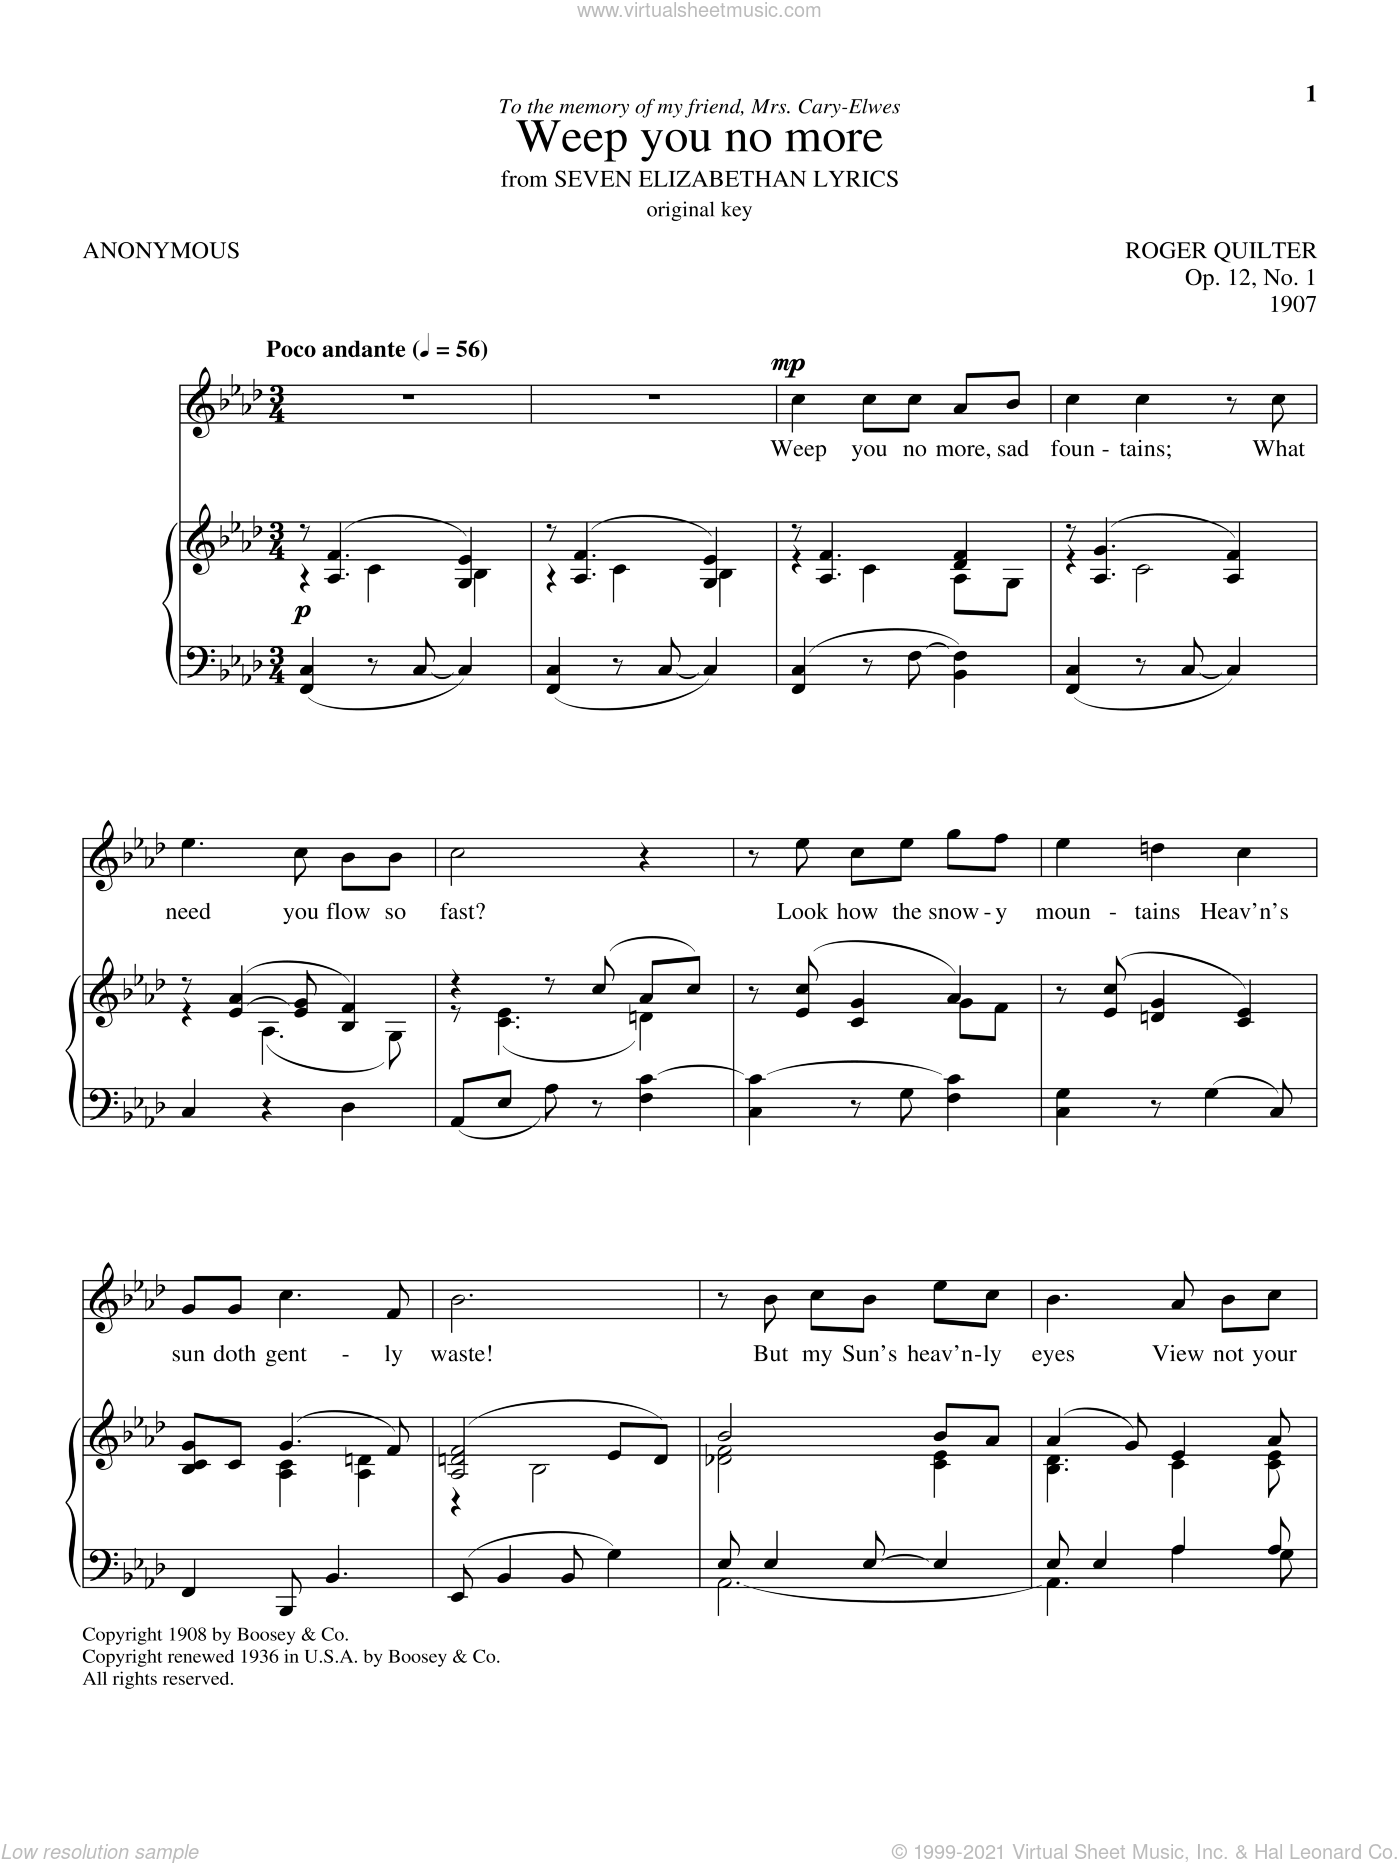 Weep You No More sheet music for voice and piano by Roger Quilter